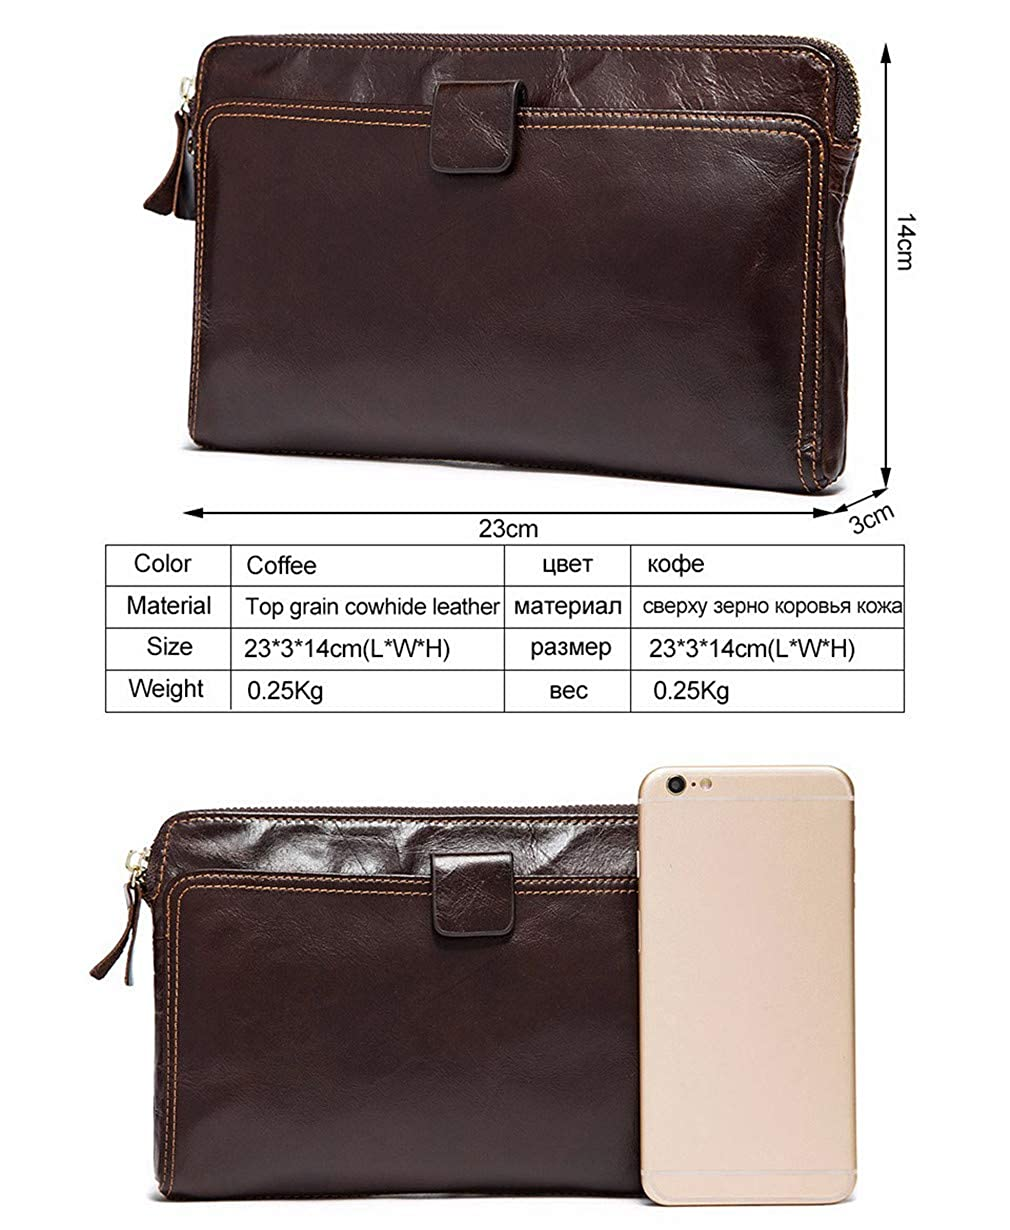 Genuine Leather Wallet Mens Wallets For Card Holder Clutch Male Bags Coin Purse